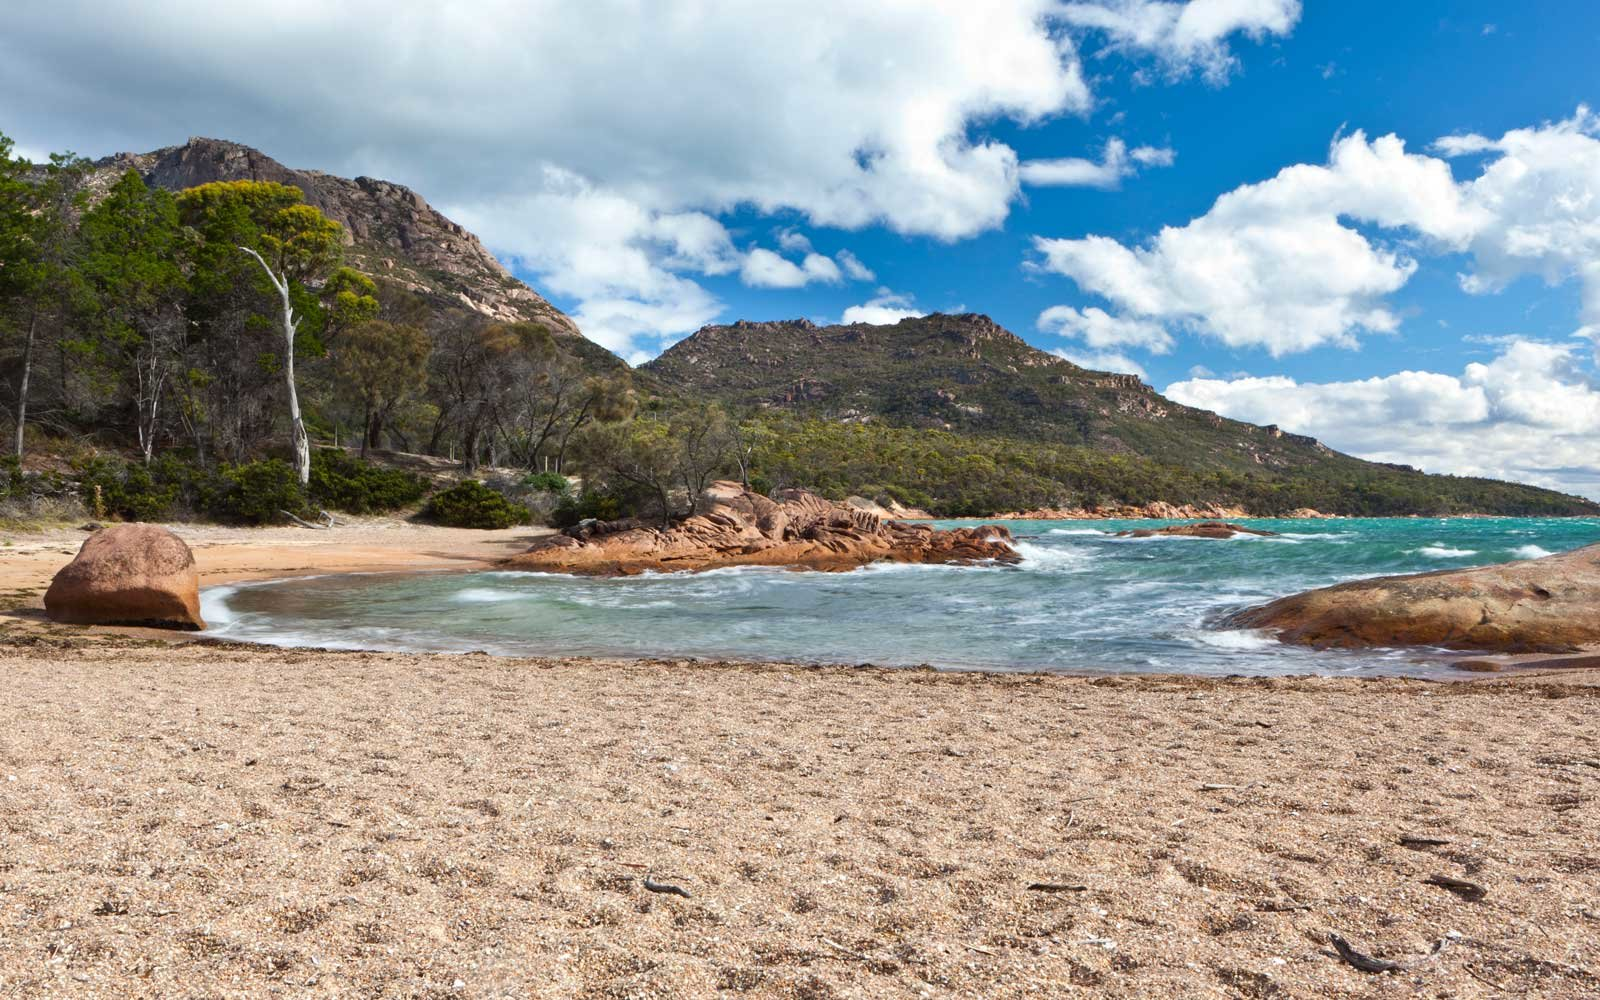 Honeymoon Bay in Tasmania, Australia